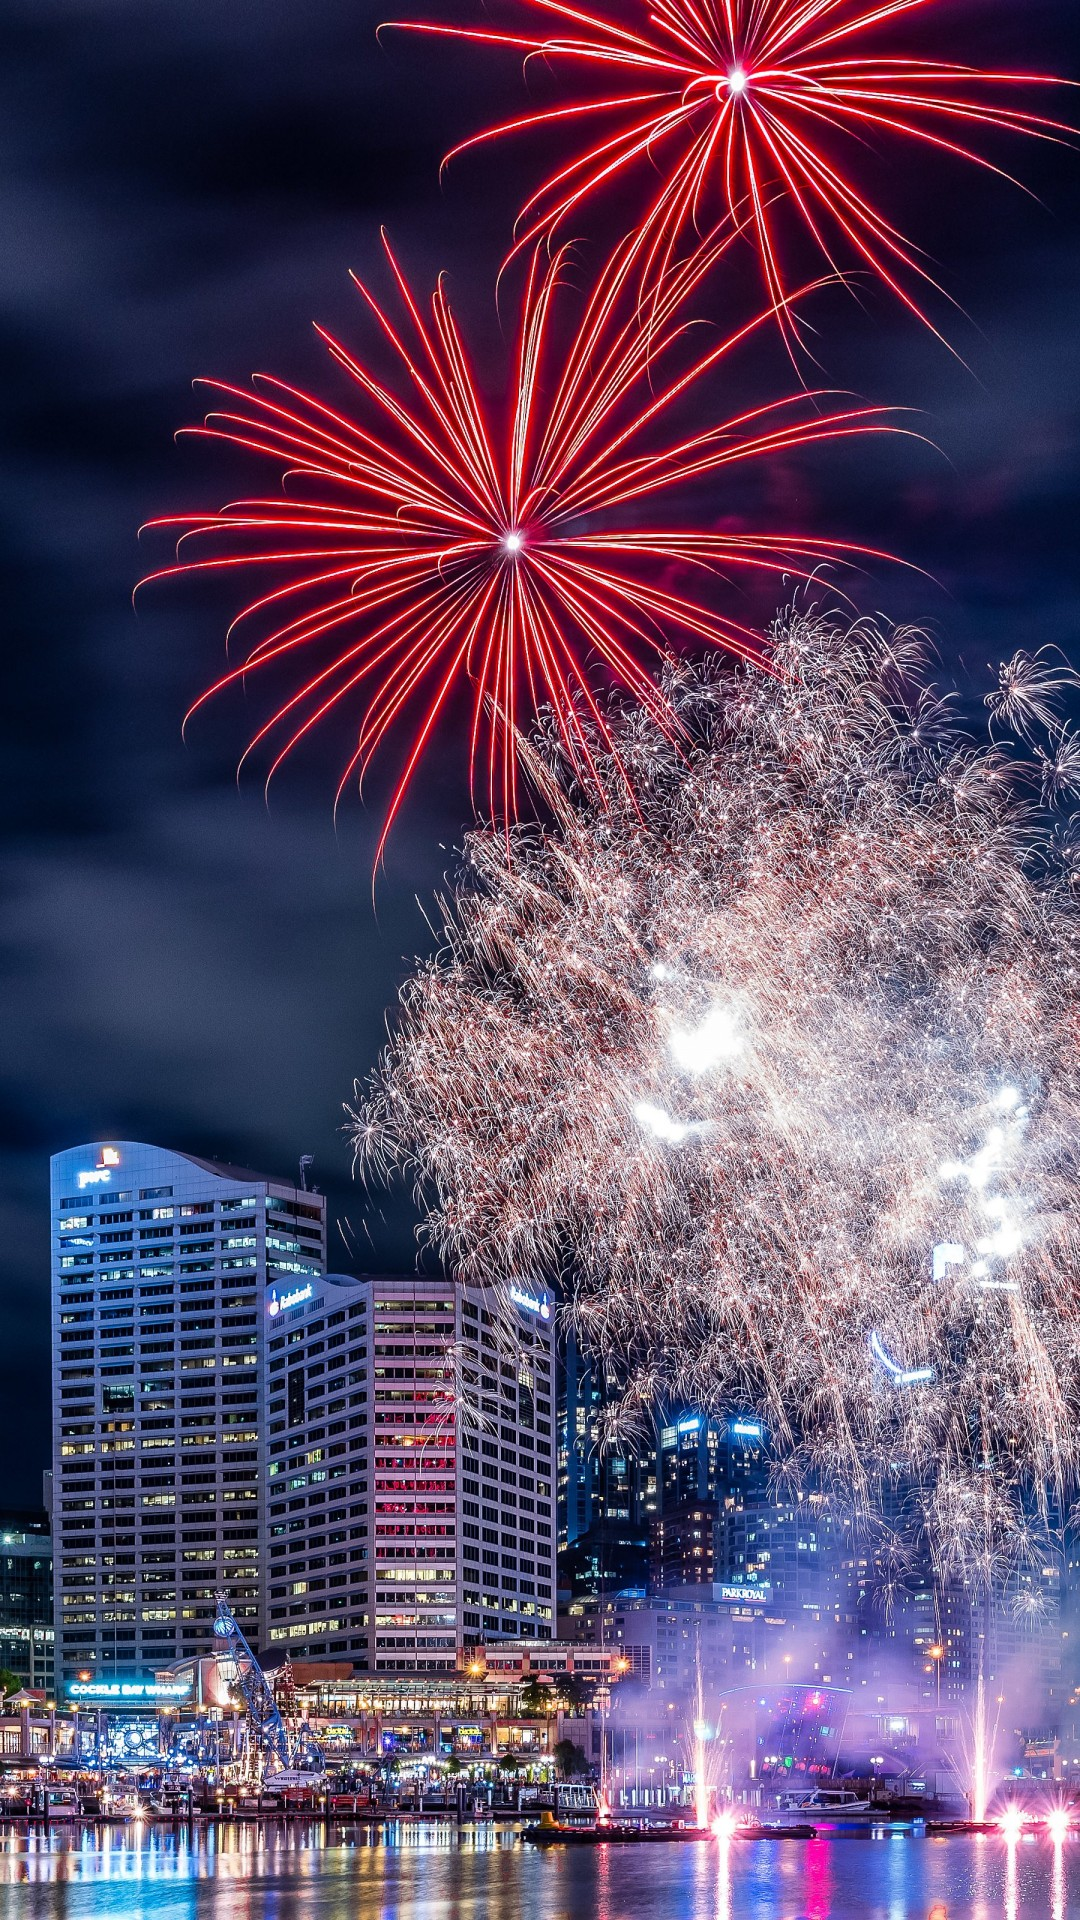 Fireworks In Darling Harbour Wallpaper for SONY Xperia Z3